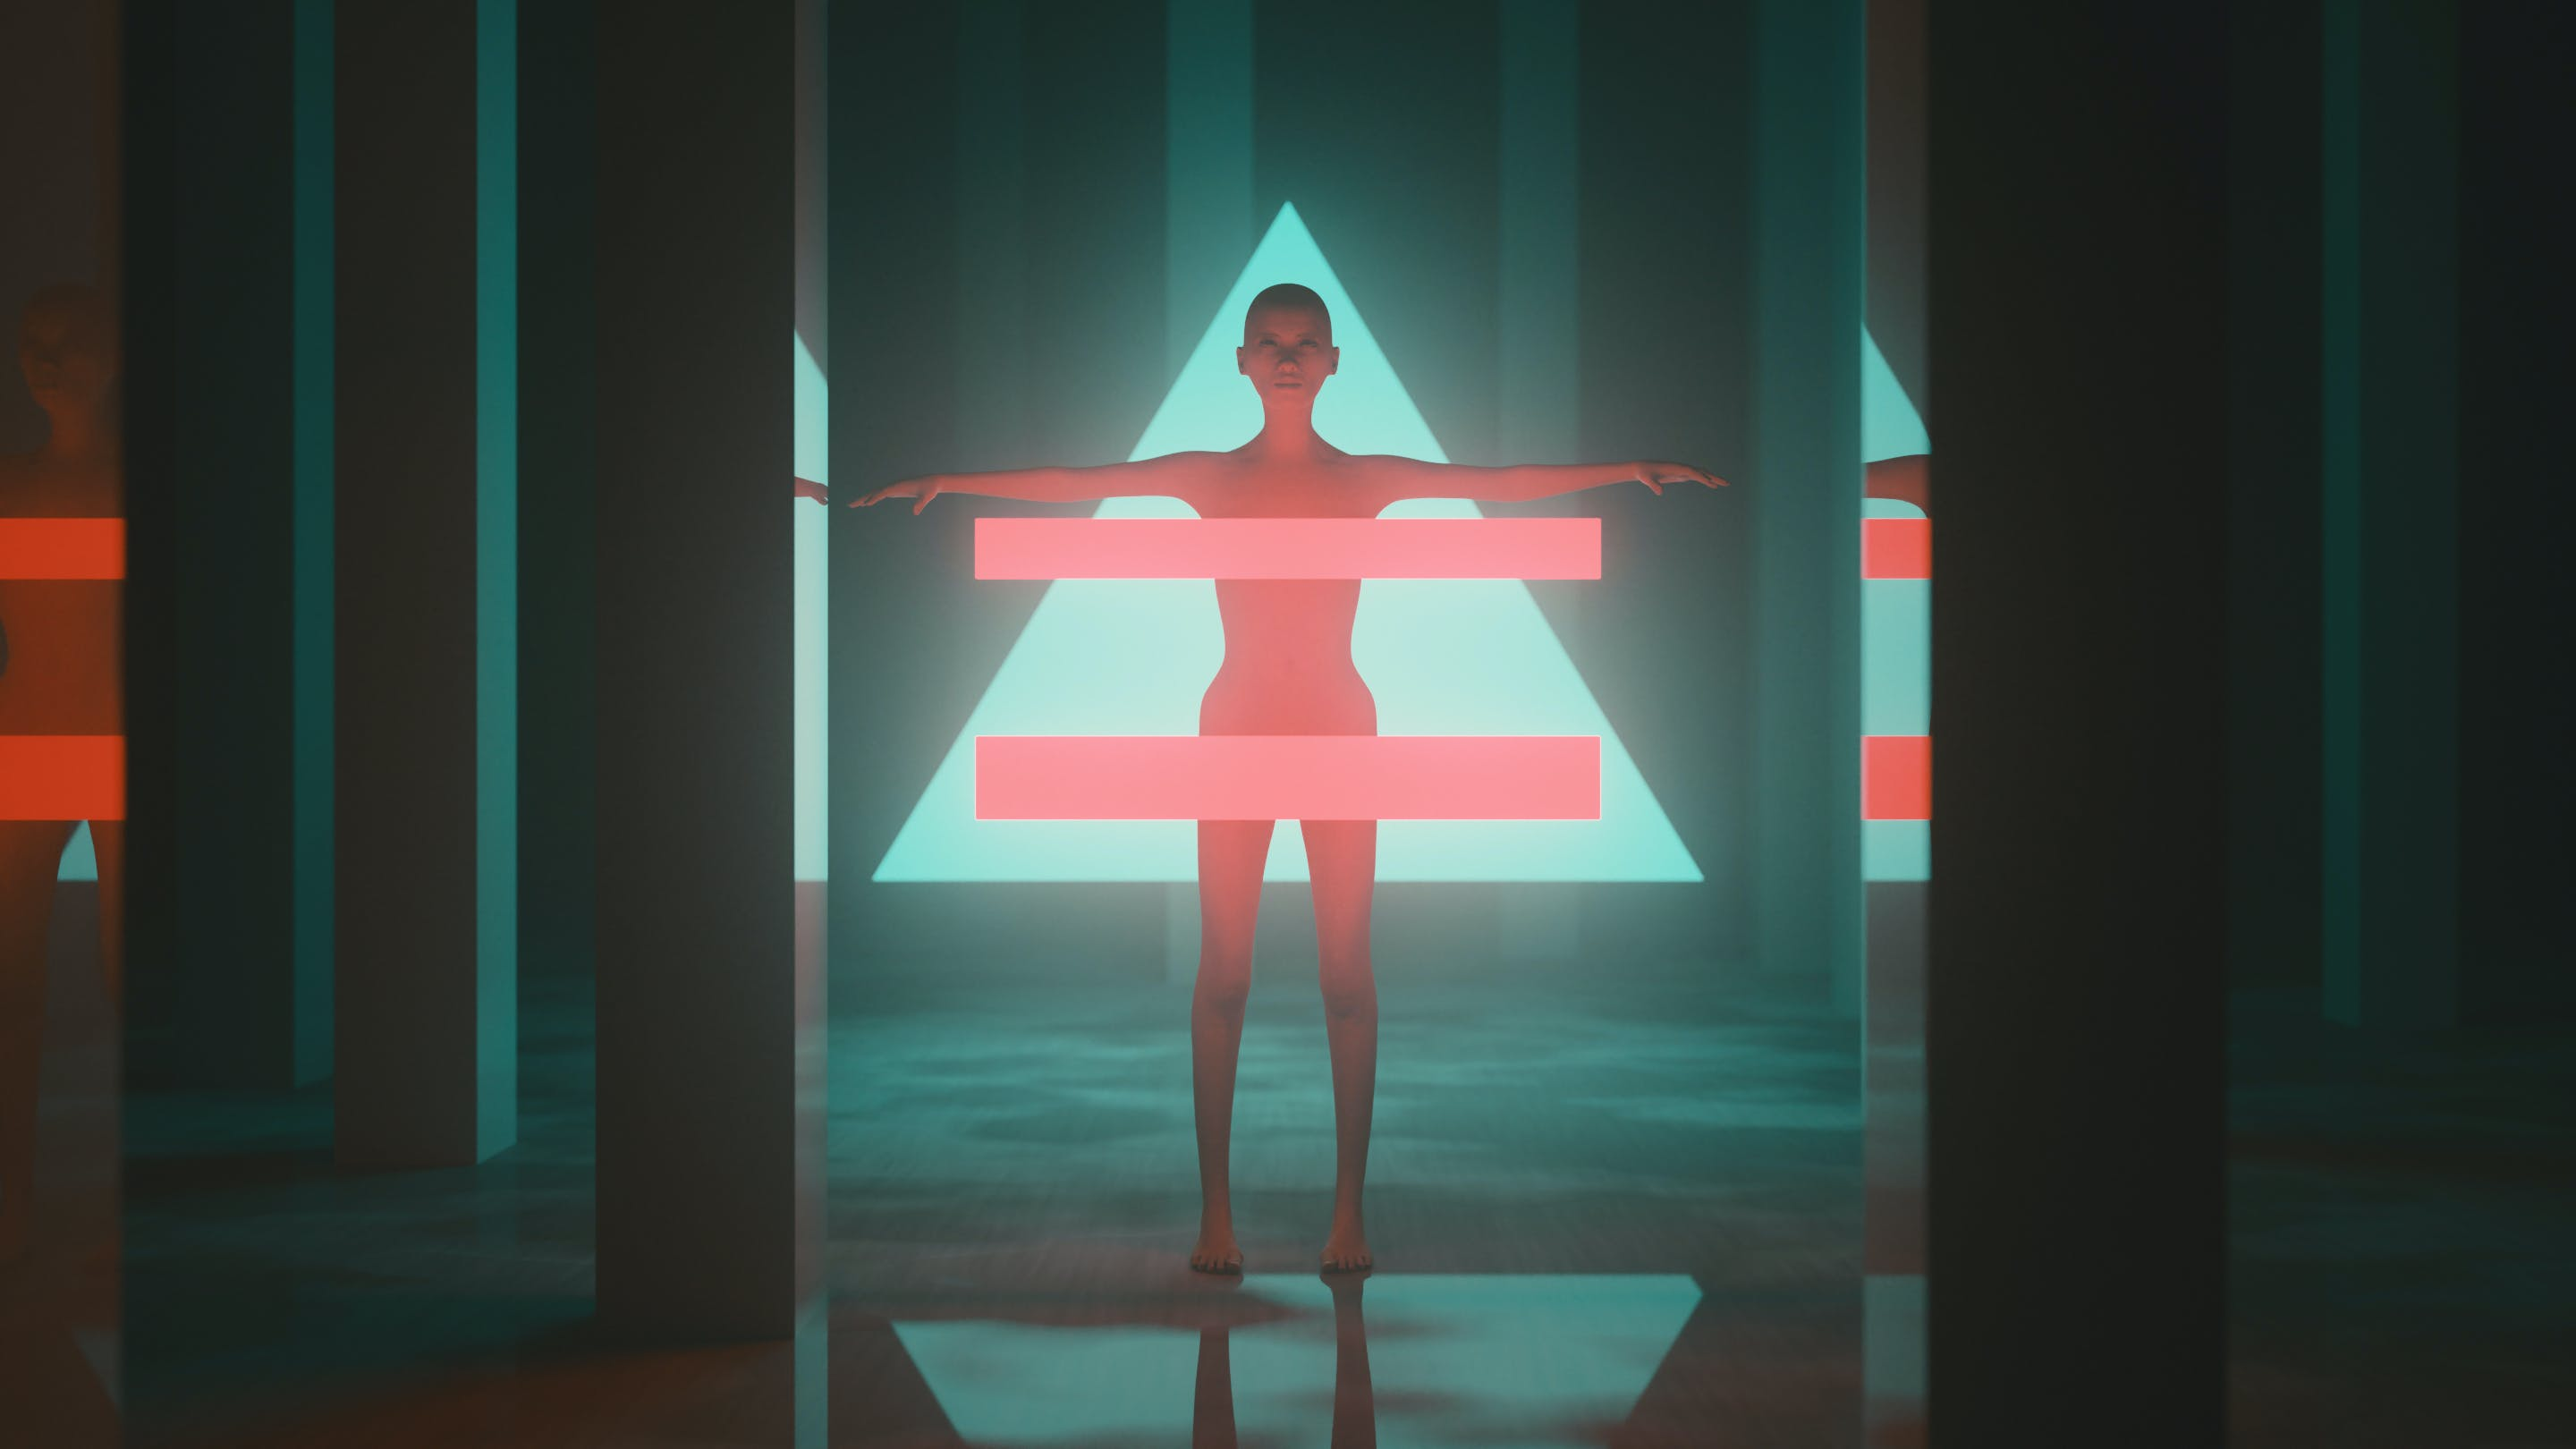 futuristic, geometric shapes, girl